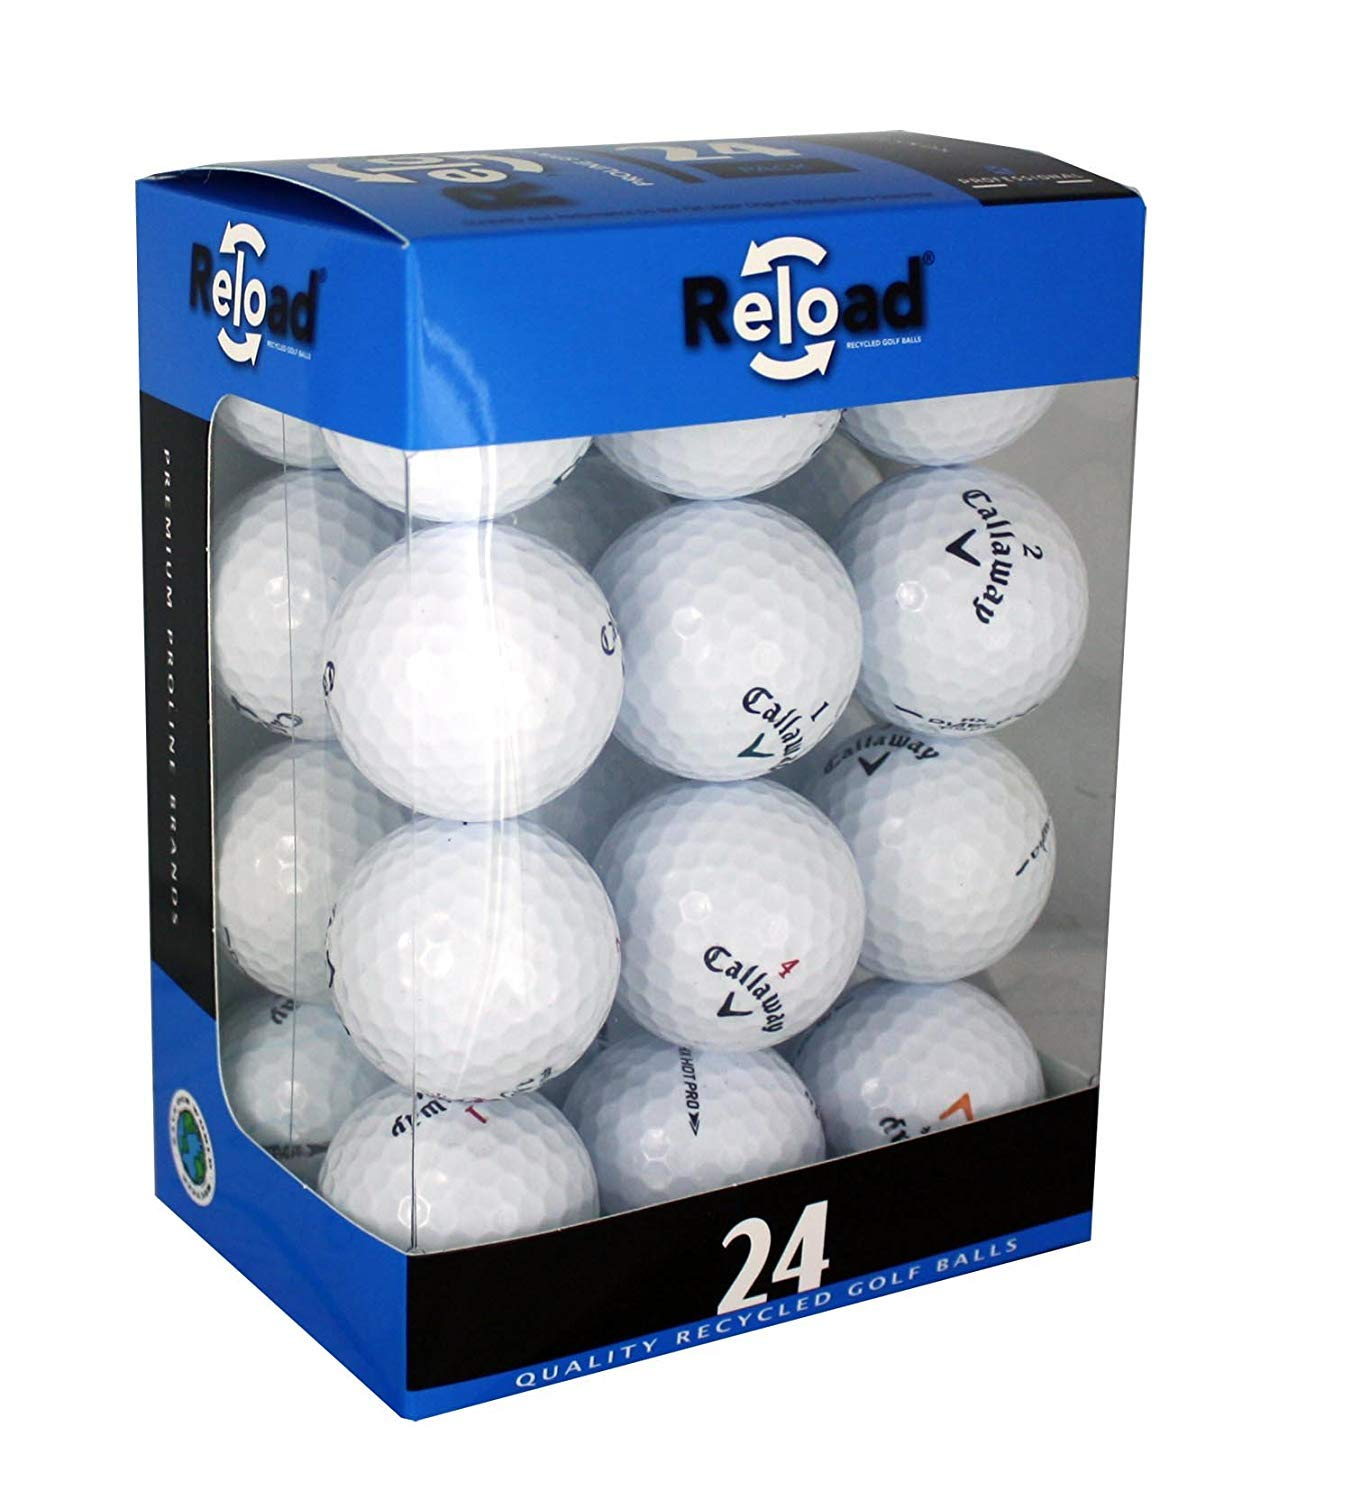 Reload Recycled Golf Balls (24-Pack) of Callaway Golf Balls by Callaway